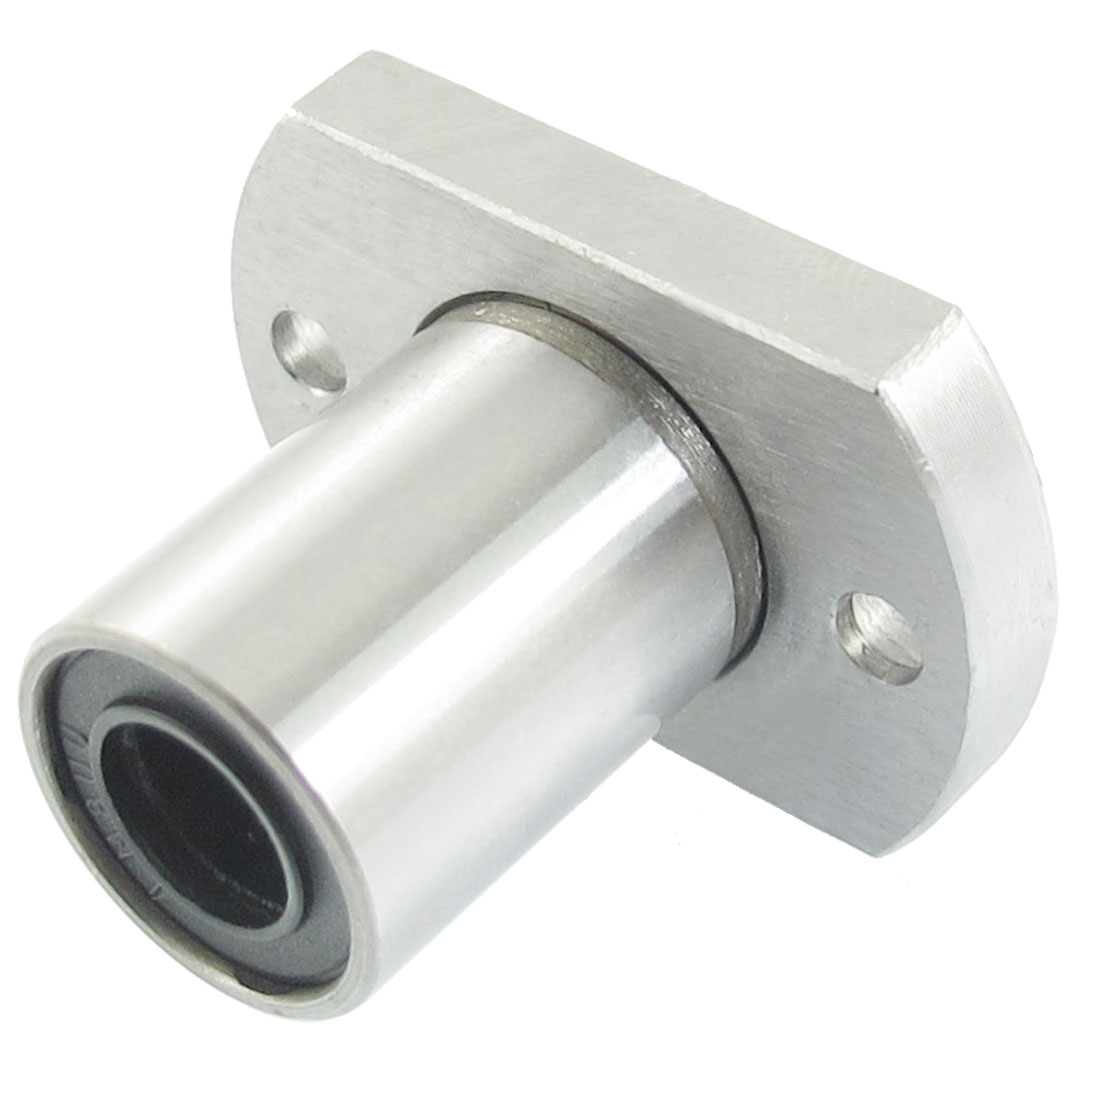 8mm Oval Flange Mounted Linear Motion Bushing Ball Bearing